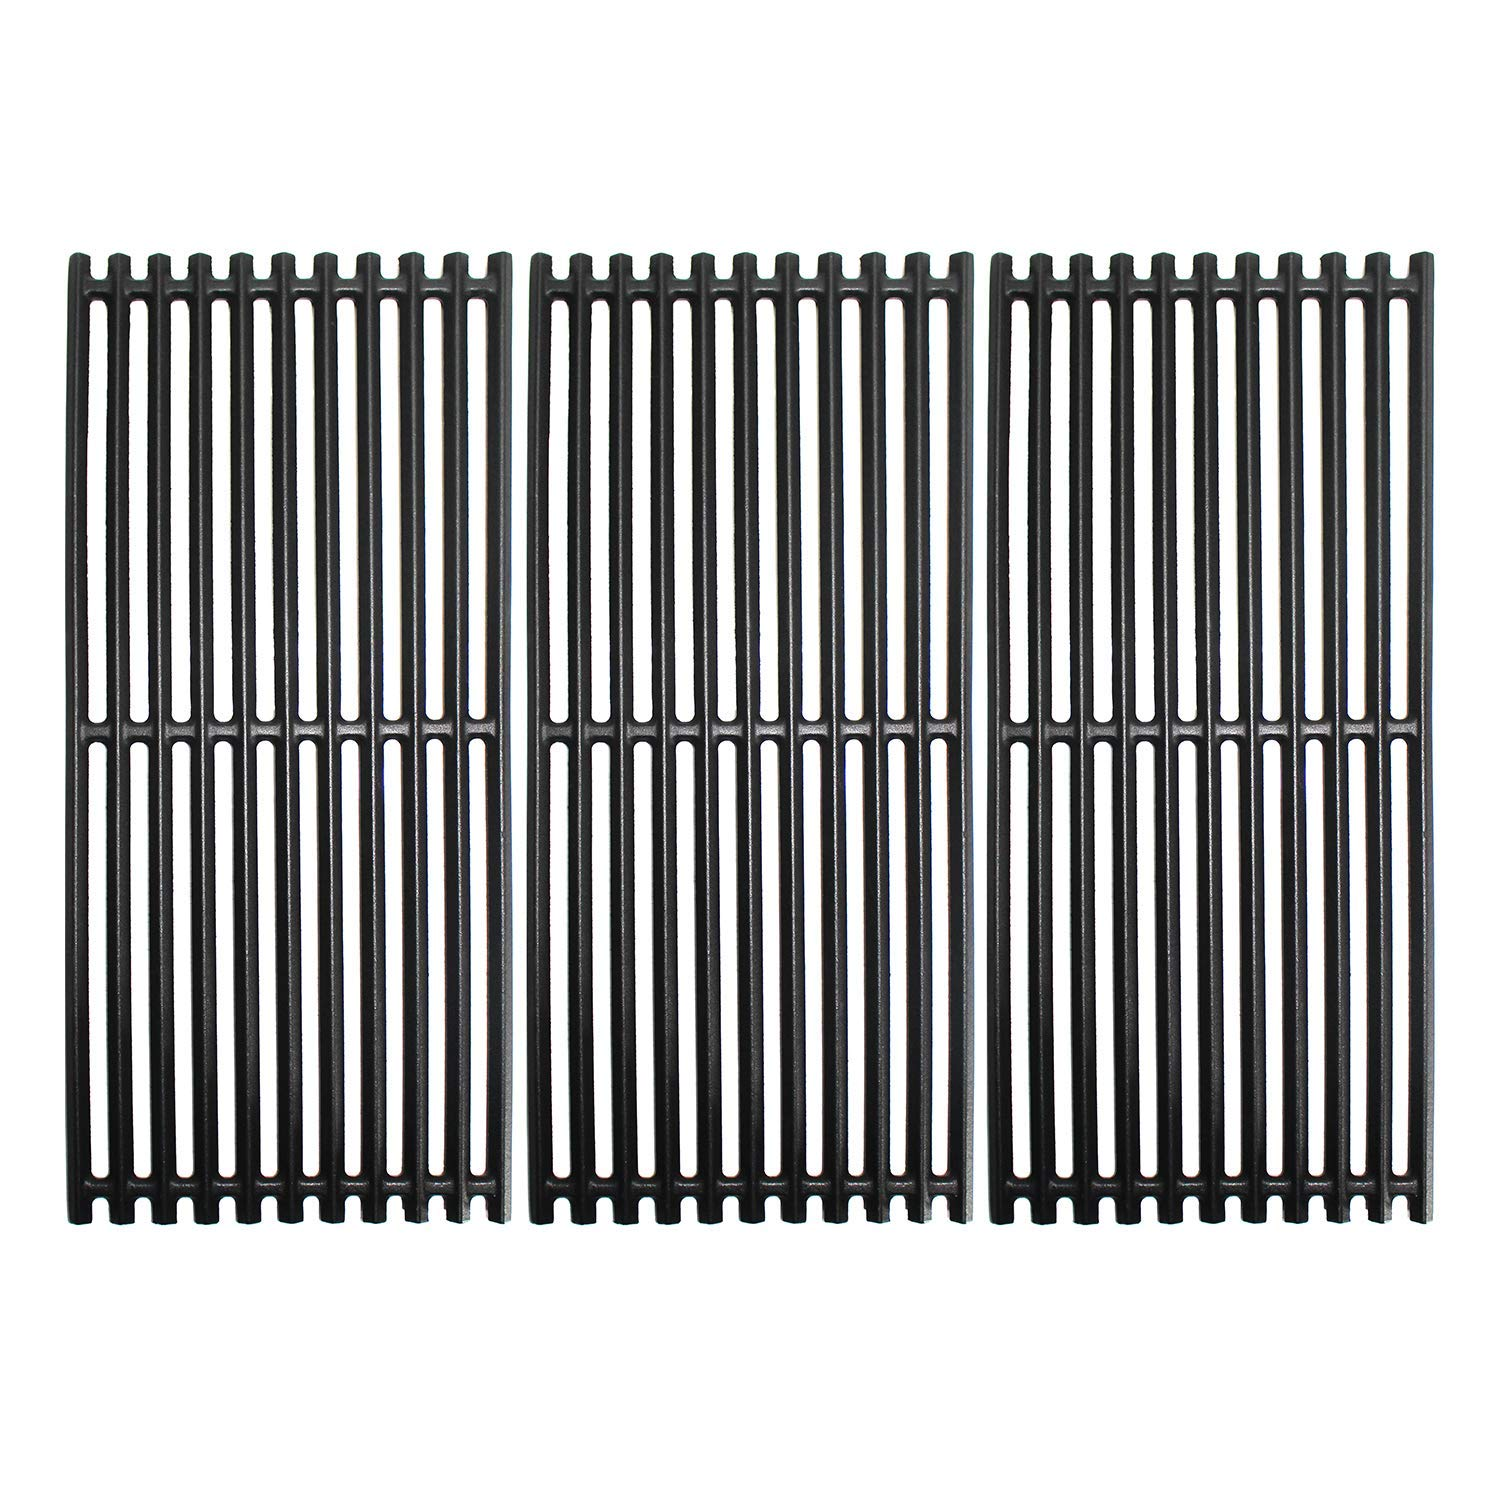 Grill Valueparts Grates for Charbroil 463241314, 463241313, 463247109, 466241313, 466241314, 466242014, 466242314, Tru-Infrared 3 Burner Grills - Matte Enamel Cast Iron Cooking Grates 18 1/4 x 24 3/4'' by Grill Valueparts